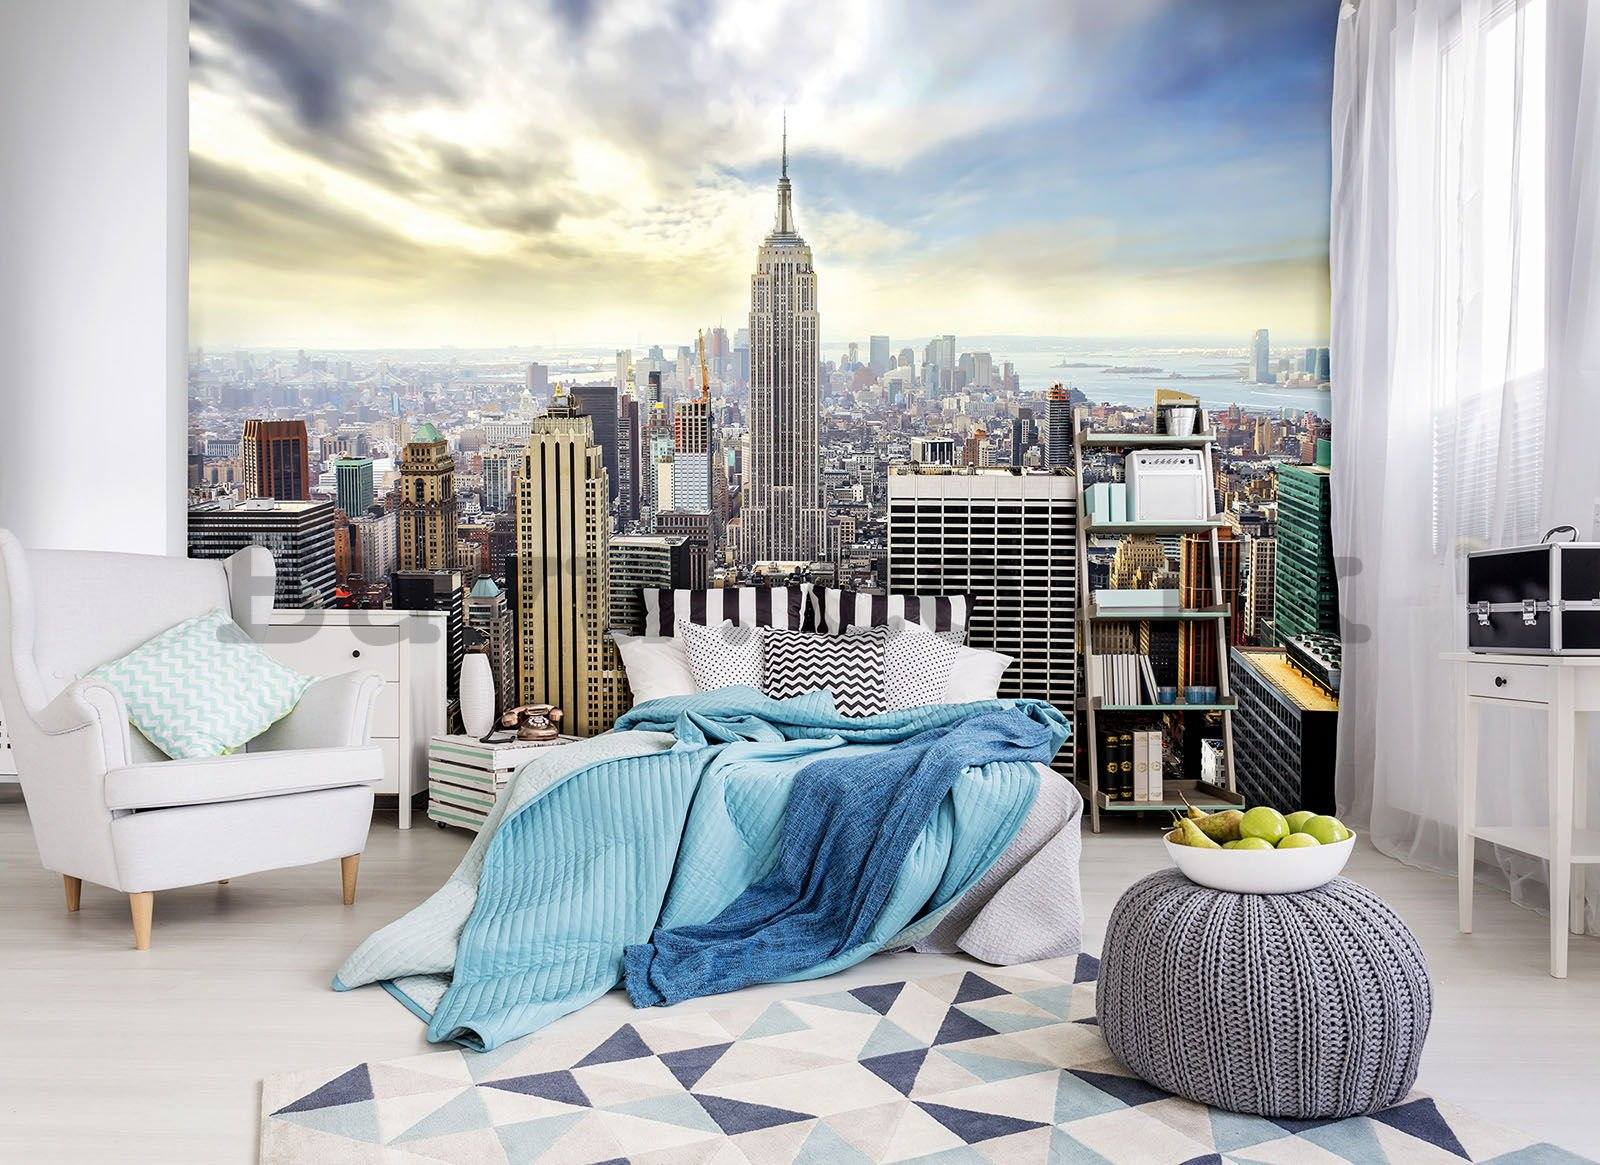 Wall mural vlies: Manhattan view - 184x254 cm